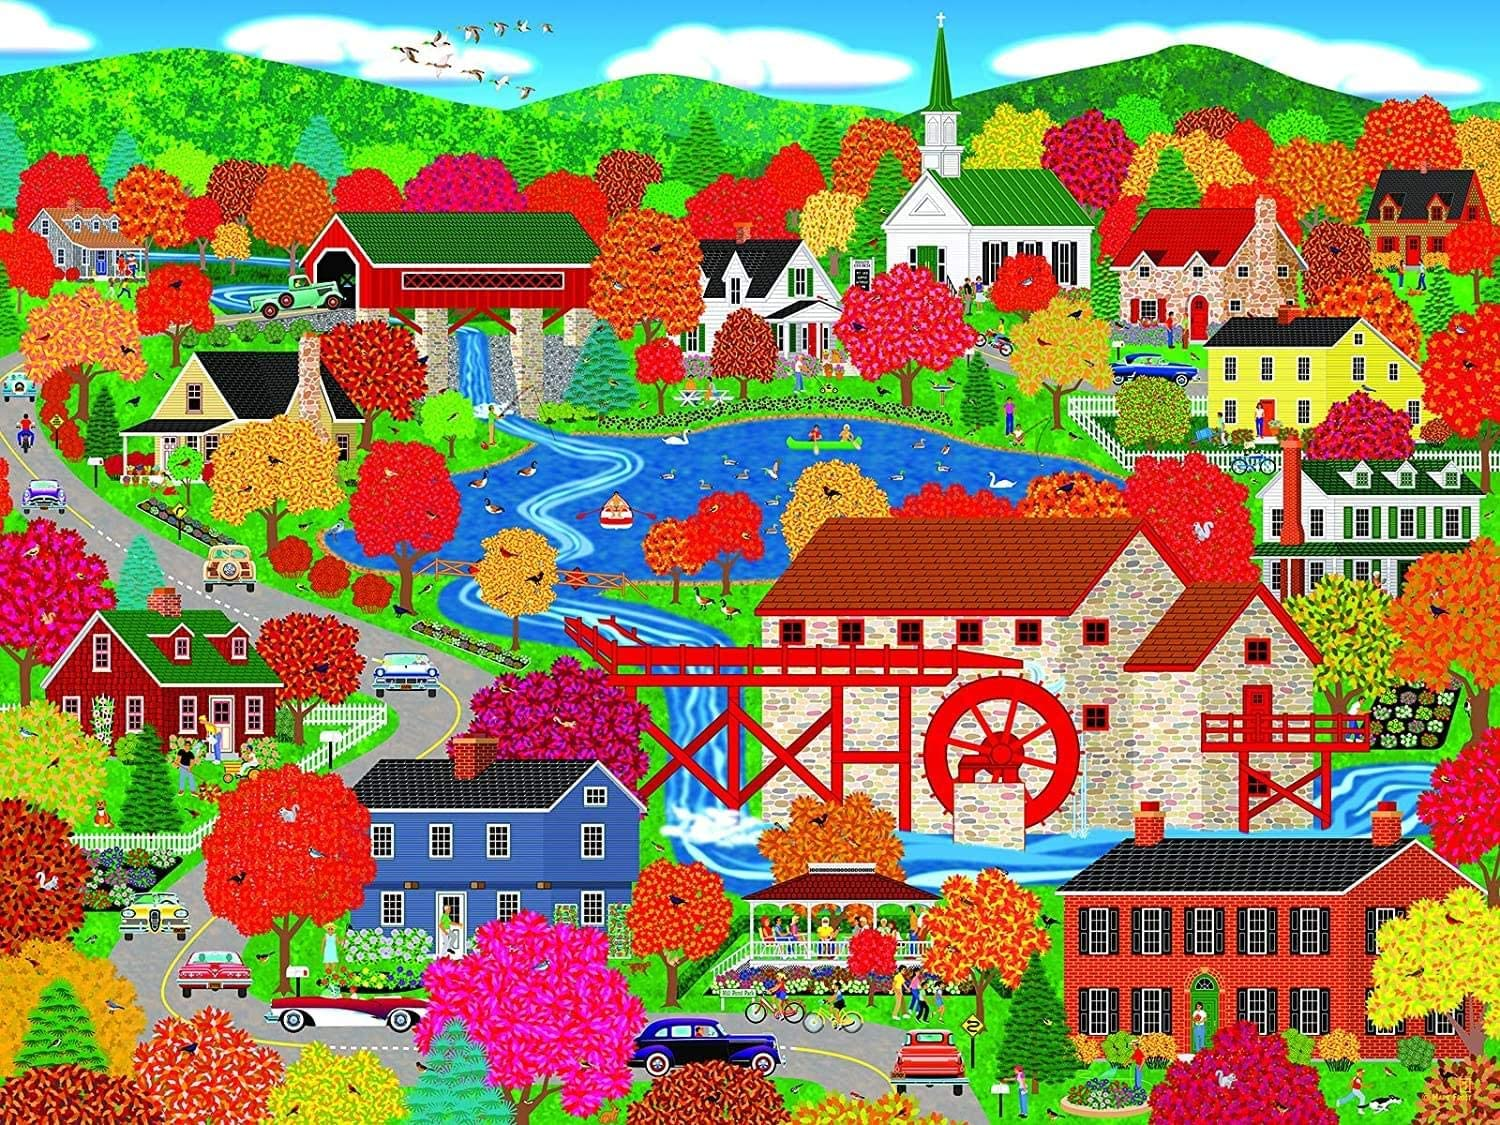 Old Mill Pond, Home Country Collection 1000 Piece Jigsaw Puzzle by Artist: Mark Frost